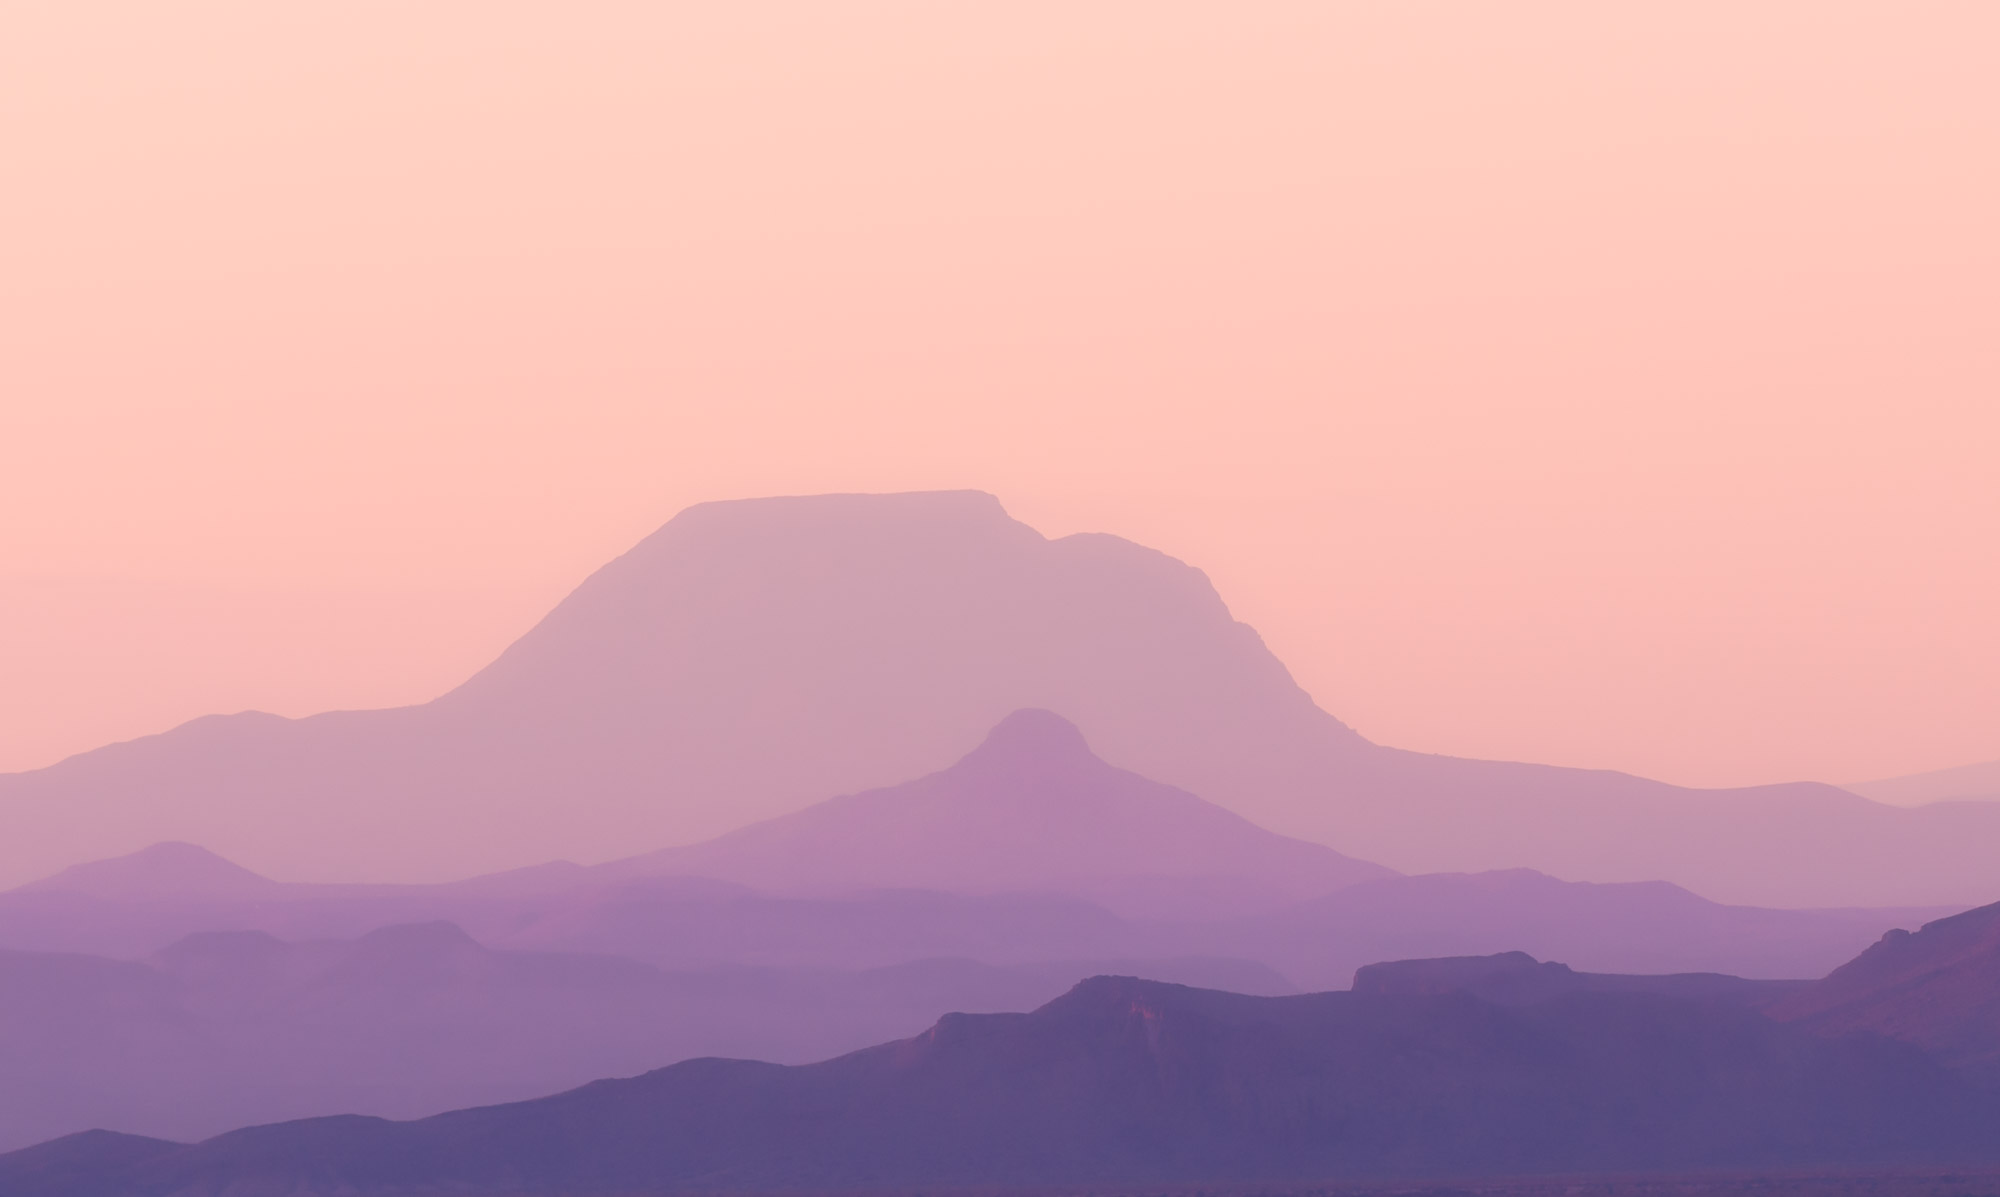 Distant hills at sunset - Big Bend National Park, Texas